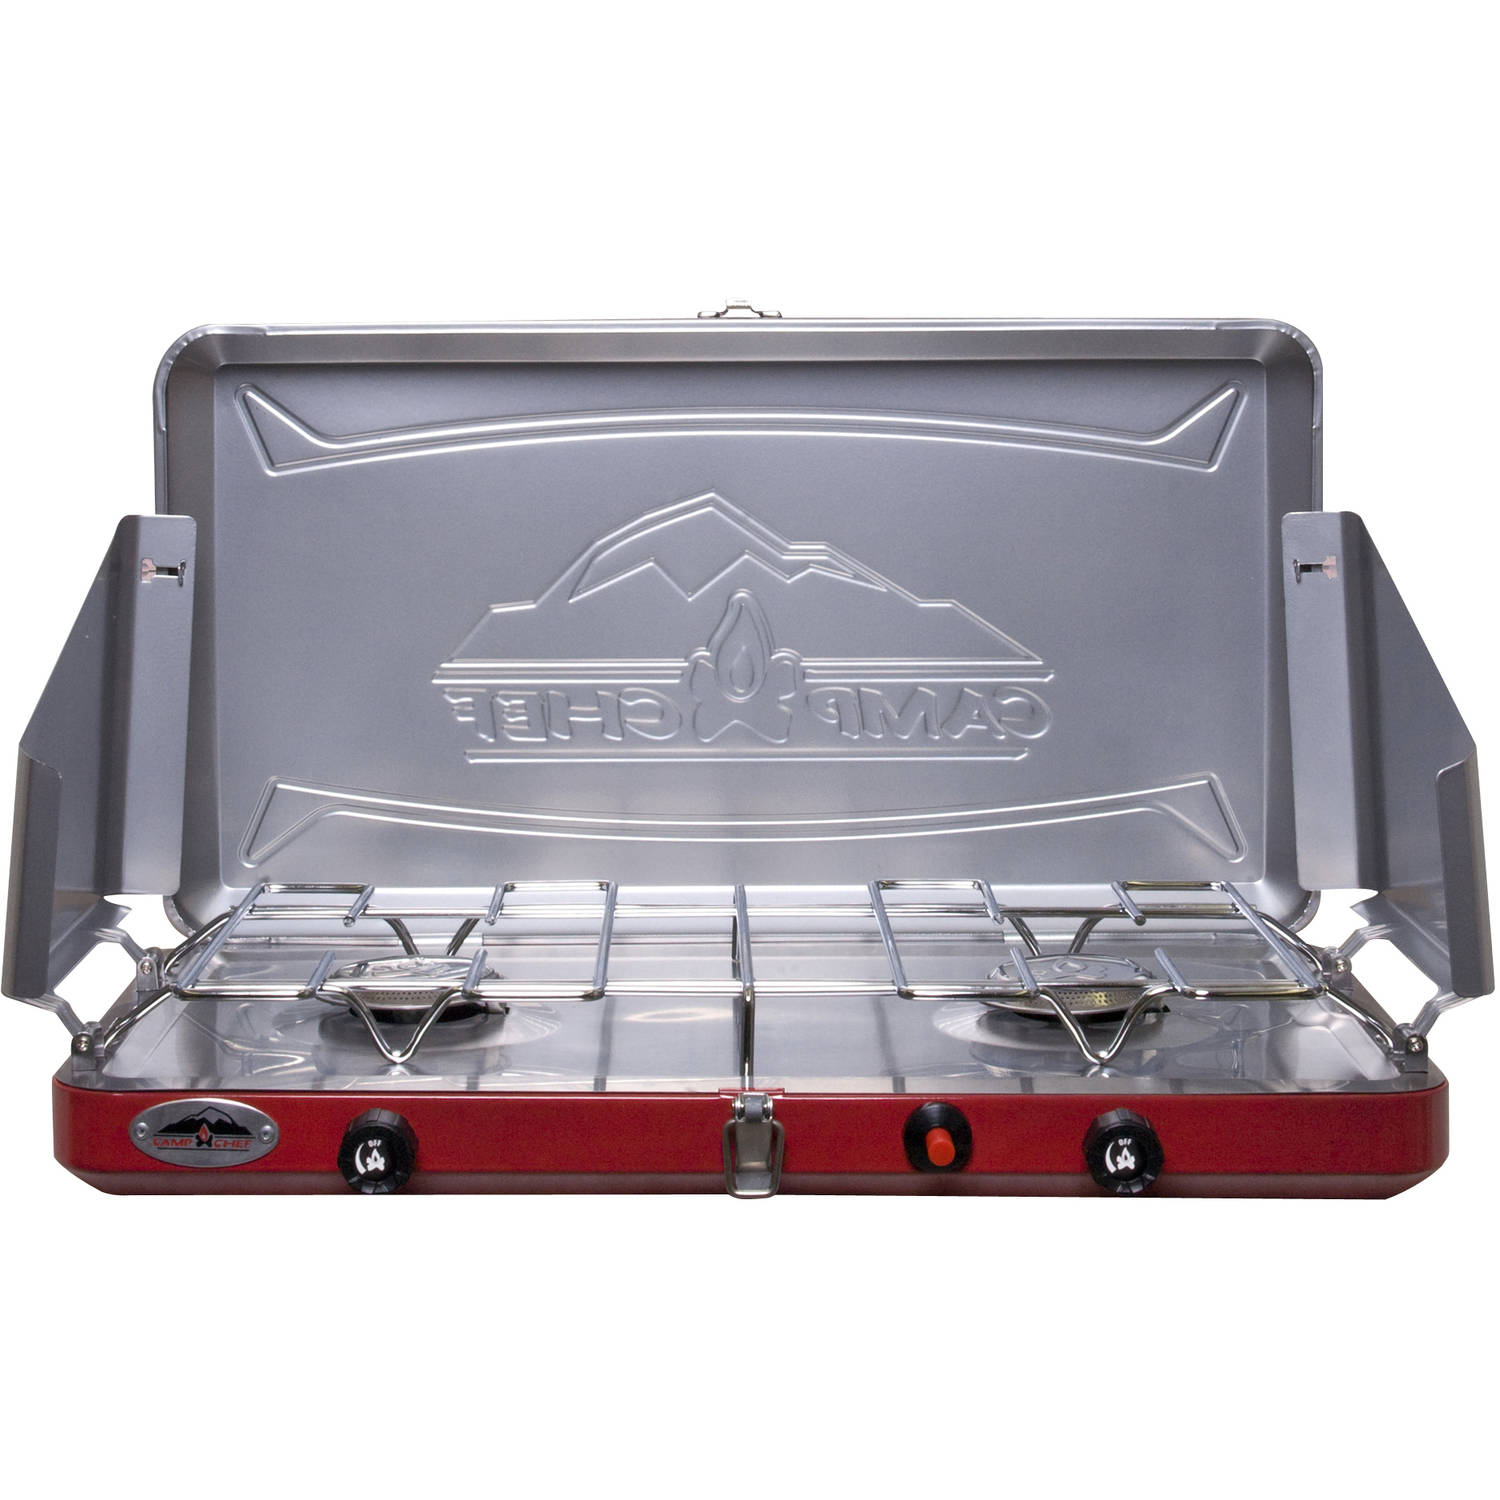 Camp Chef Teton MS2- Double burner stove with Stainless drip tray